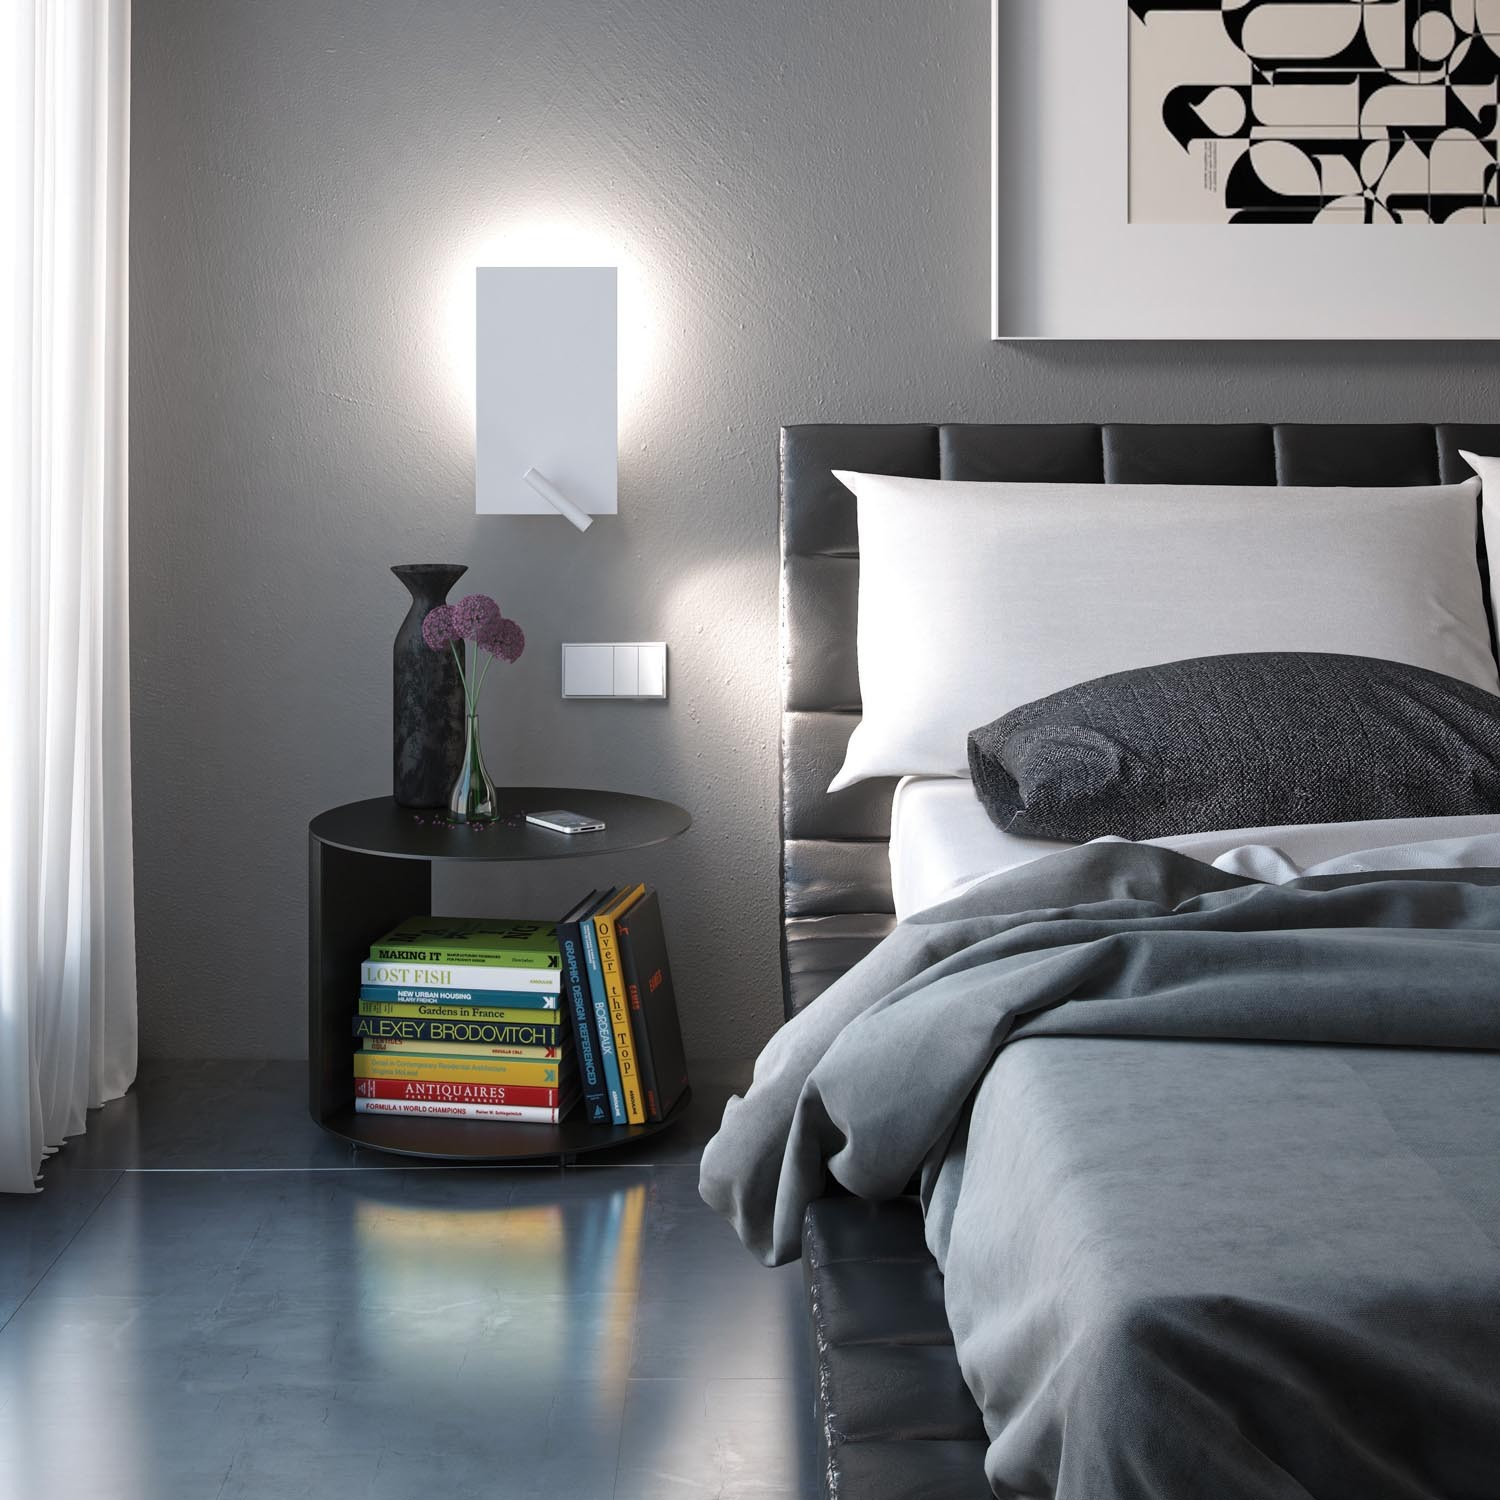 Modern Bedside Lights On Trend Wall Sconces In The Bedroom Design Necessities